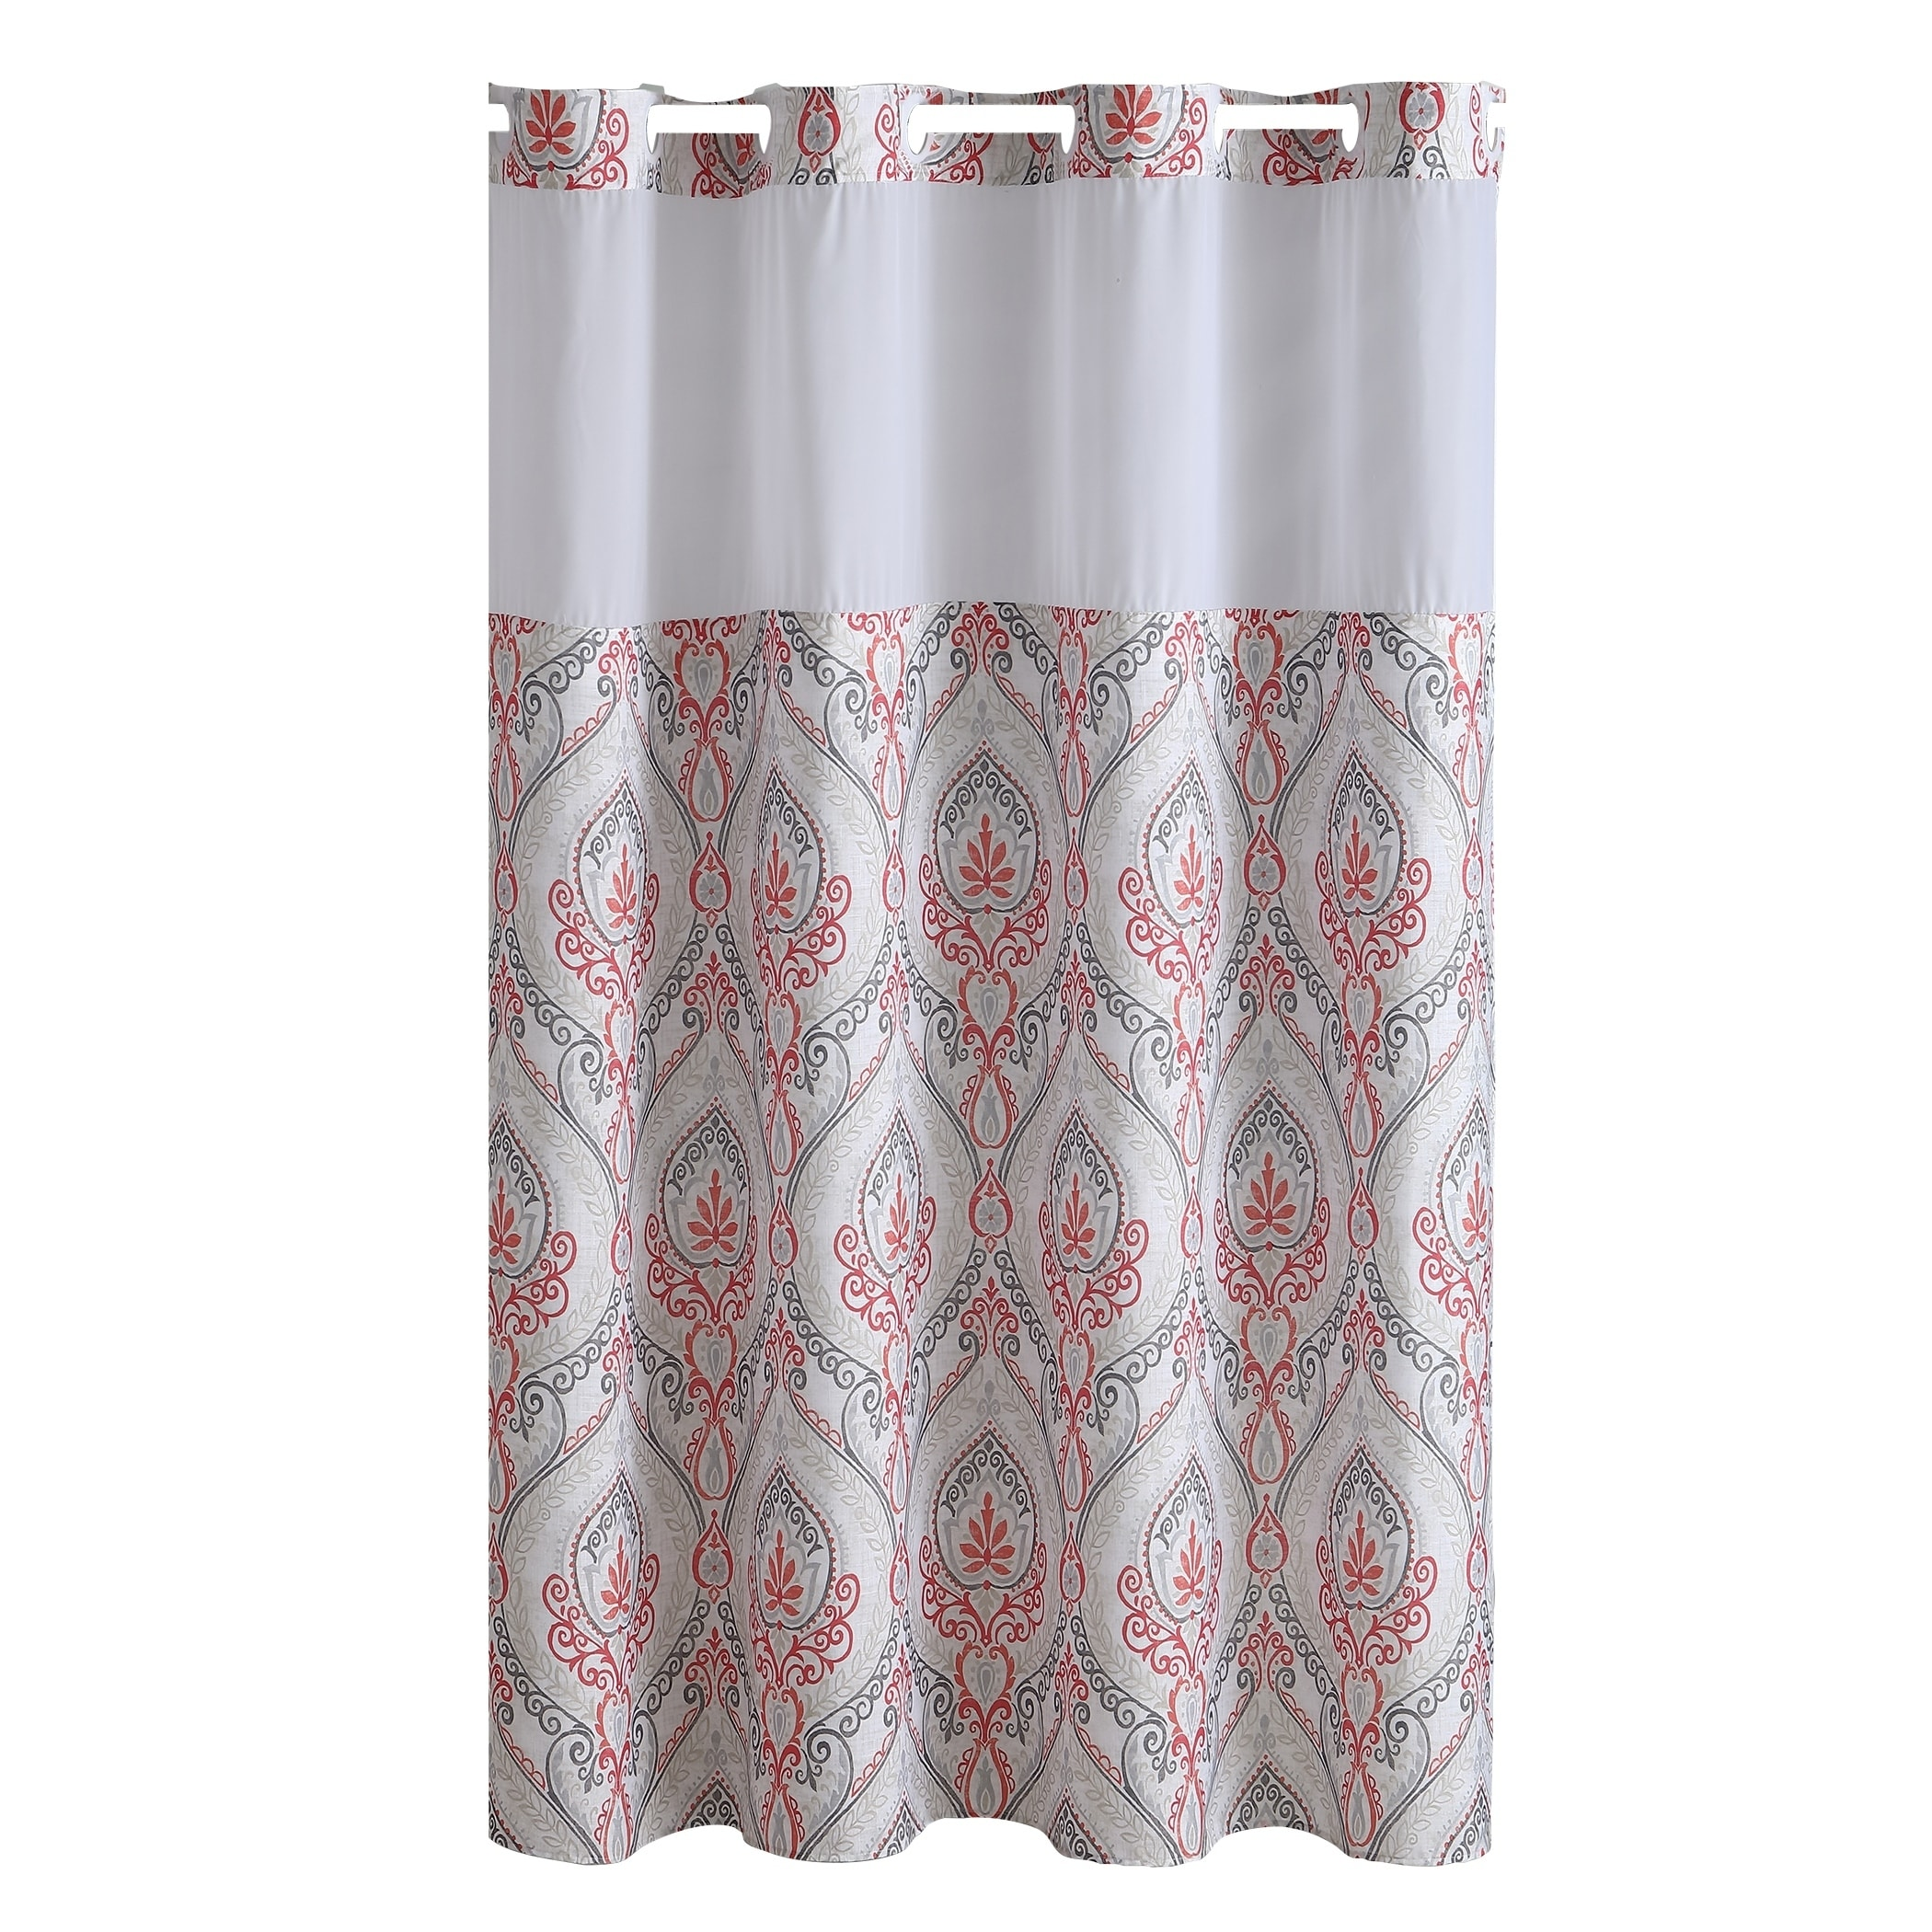 Shop HooklessR Shower Curtain French Damask Print Coral